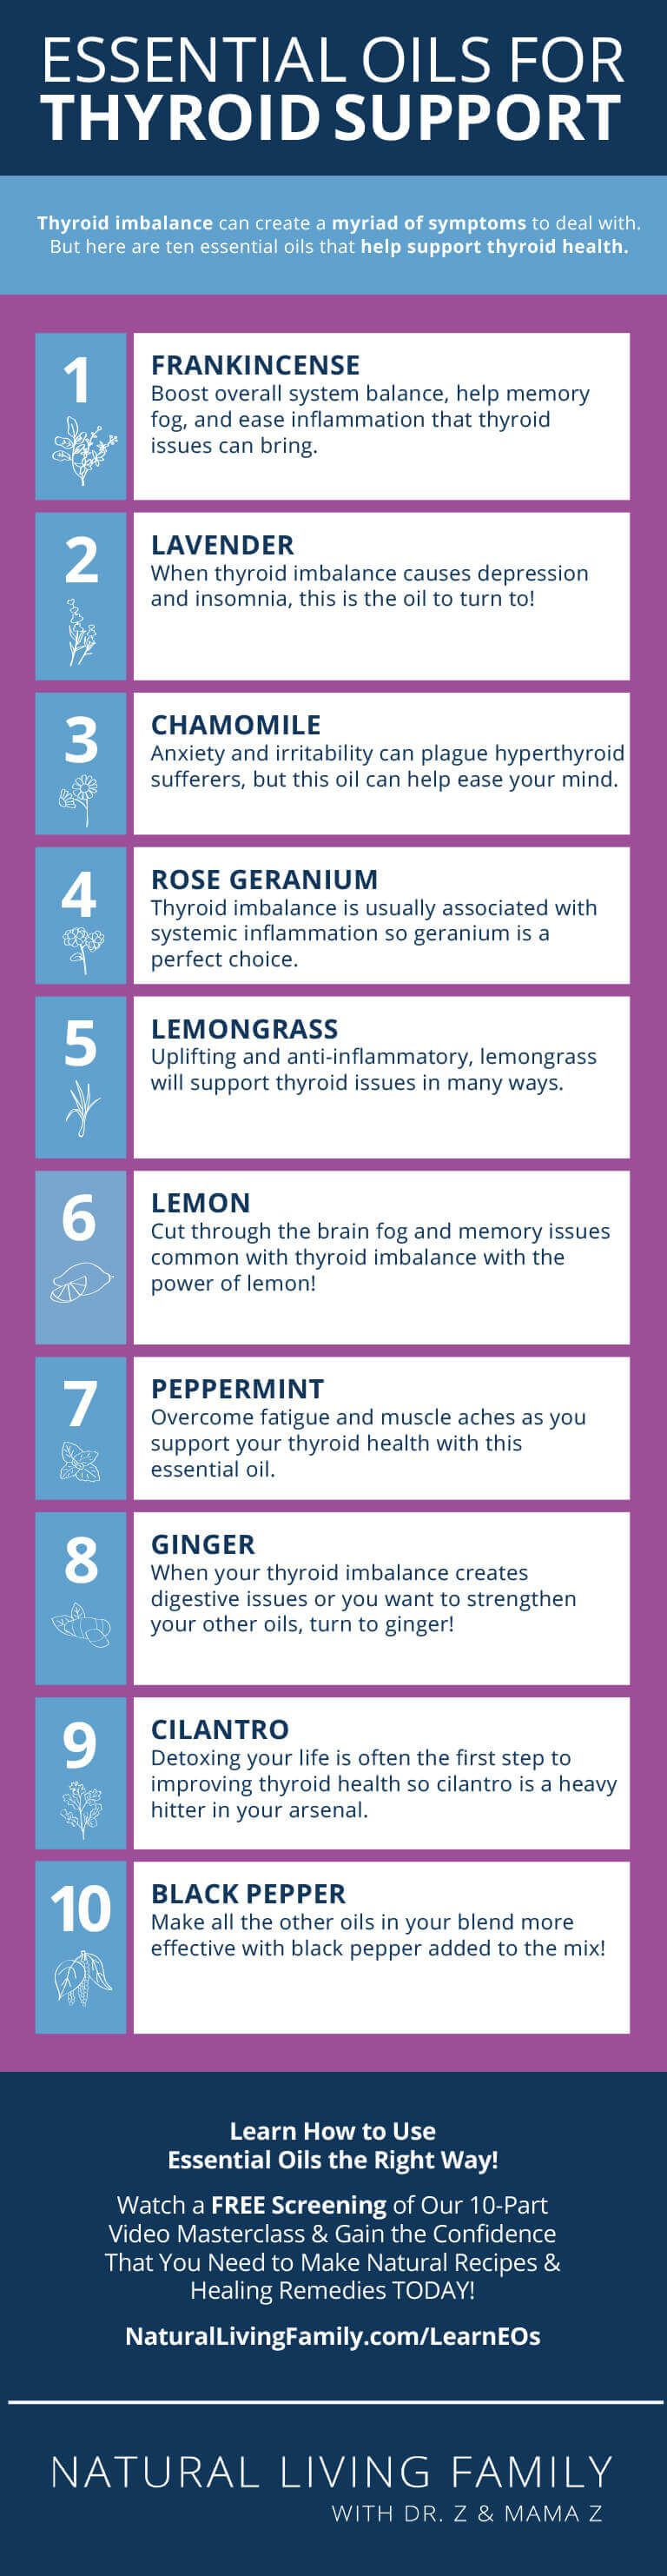 Essential Oils for Thyroid Support